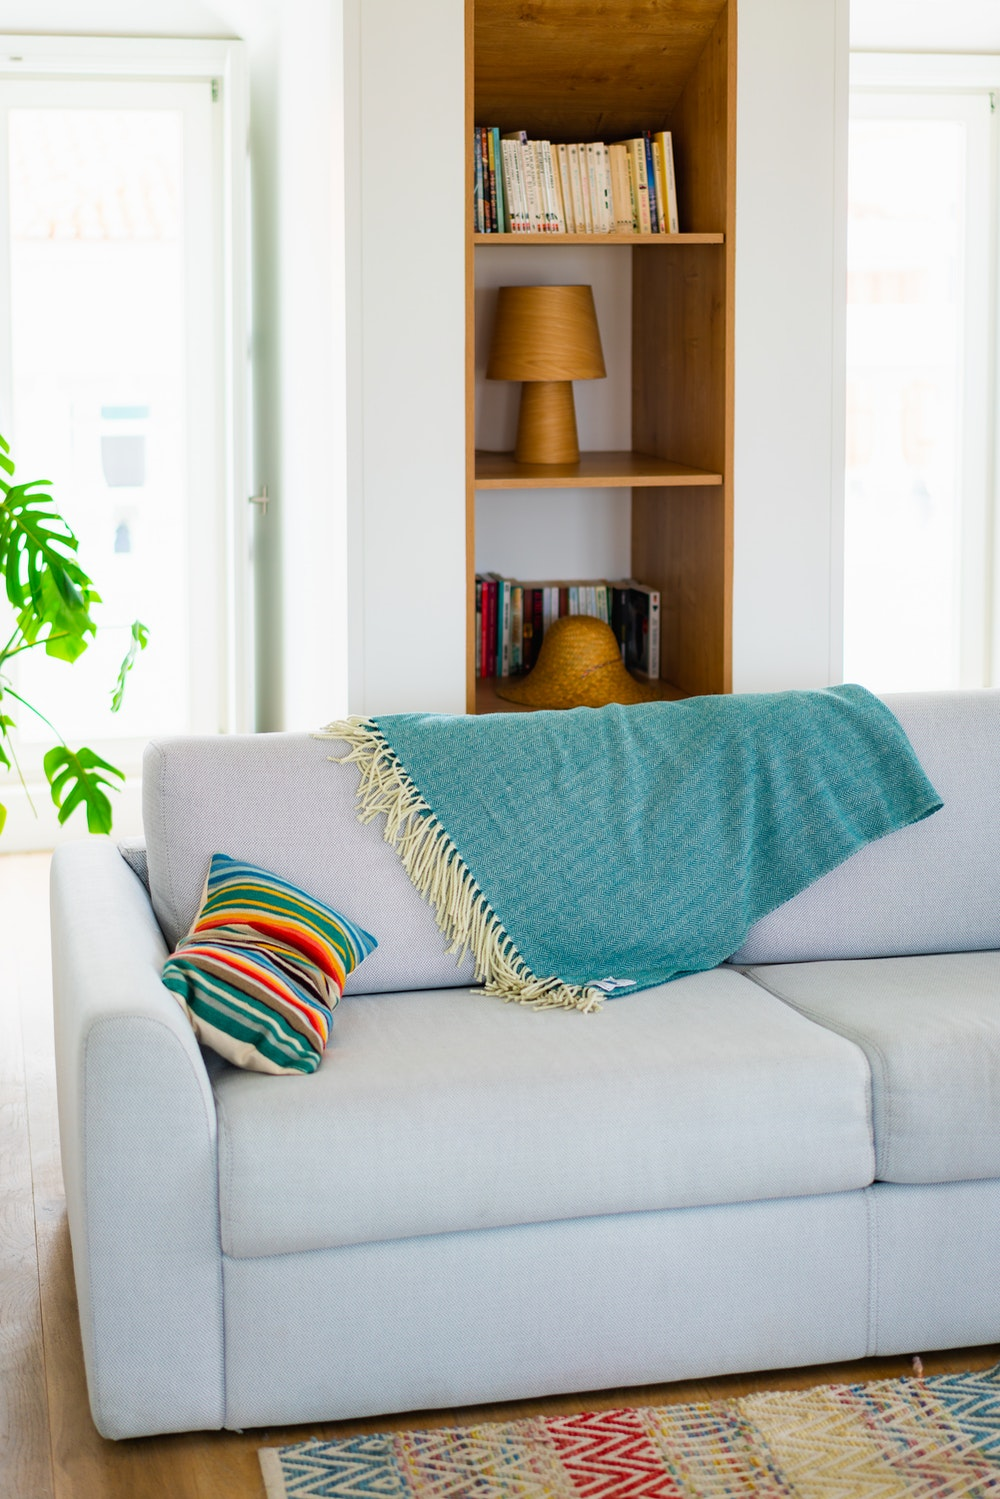 Throw blanket draped over a sofa at The Lisboans in Lisbon, Portugal